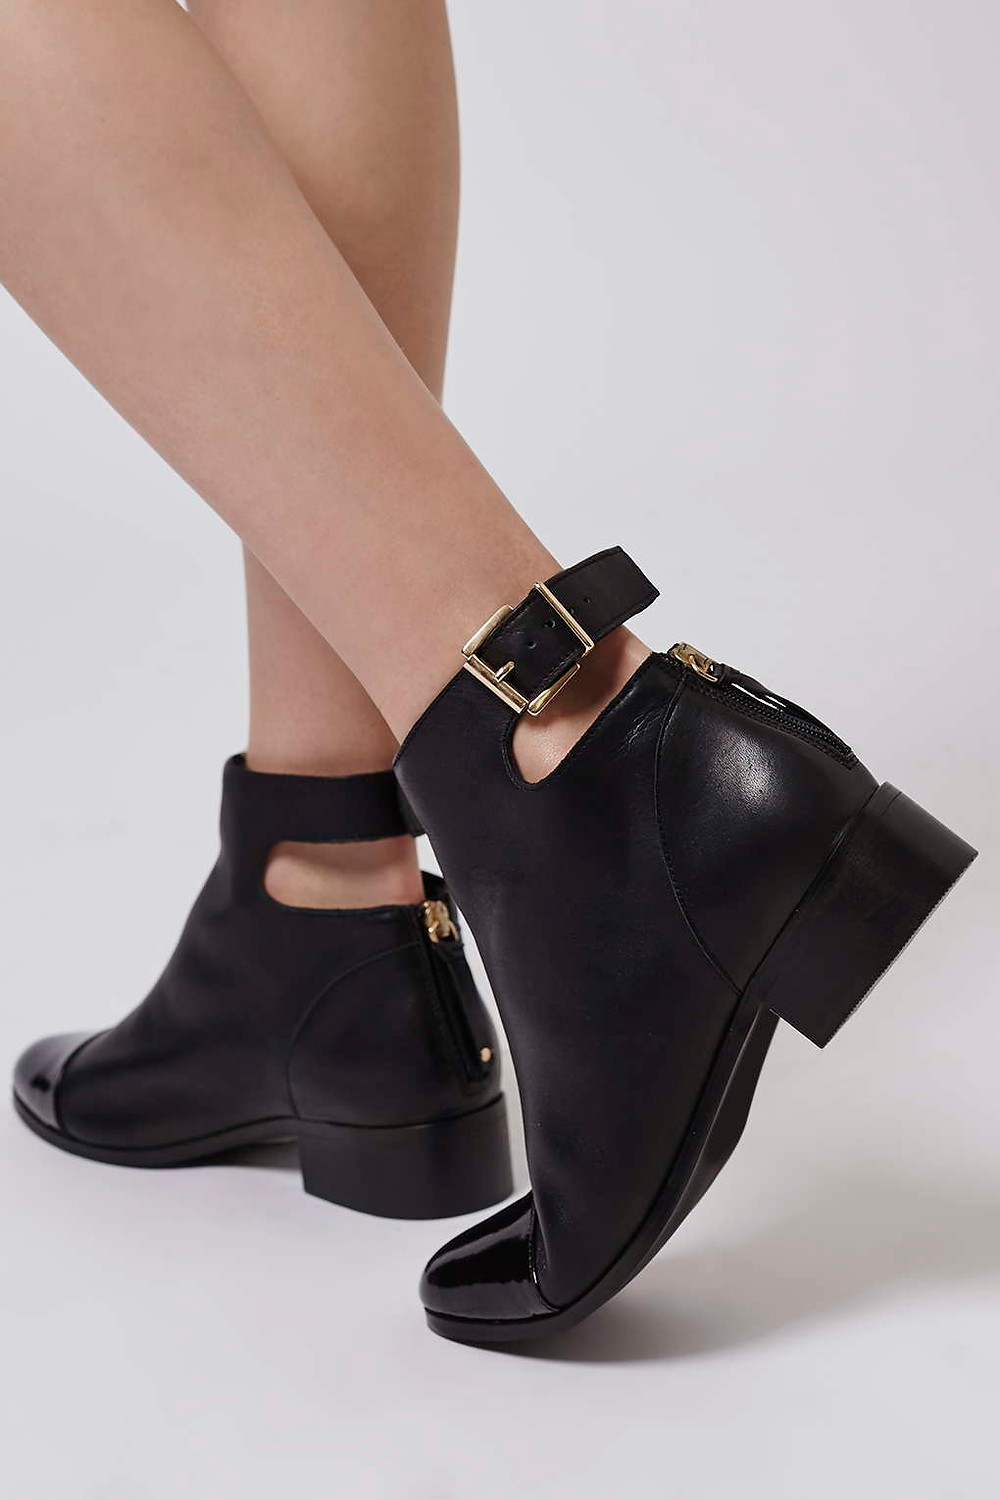 Topshop ACE back buckle boots-$140